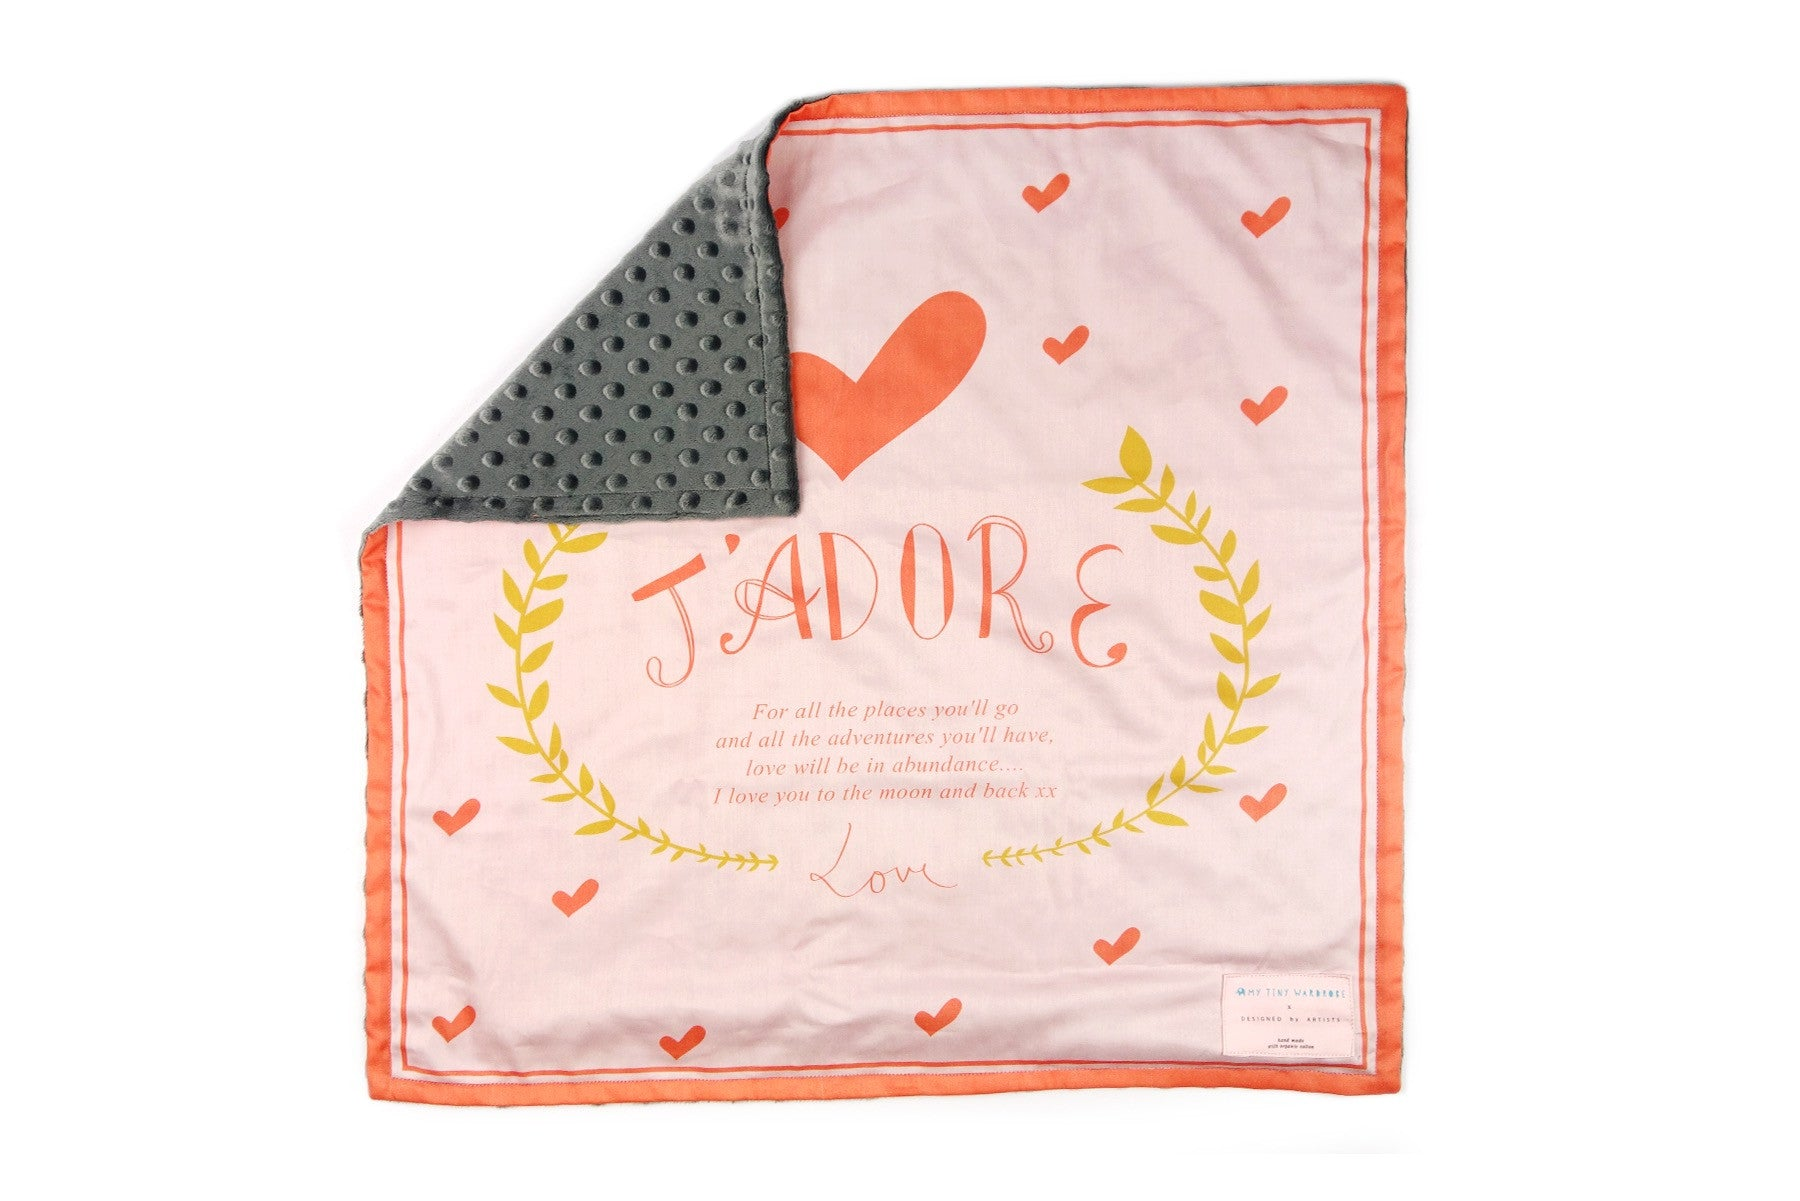 Boutique Baby Blanket - Designer Organic Cotton - Limited Edition